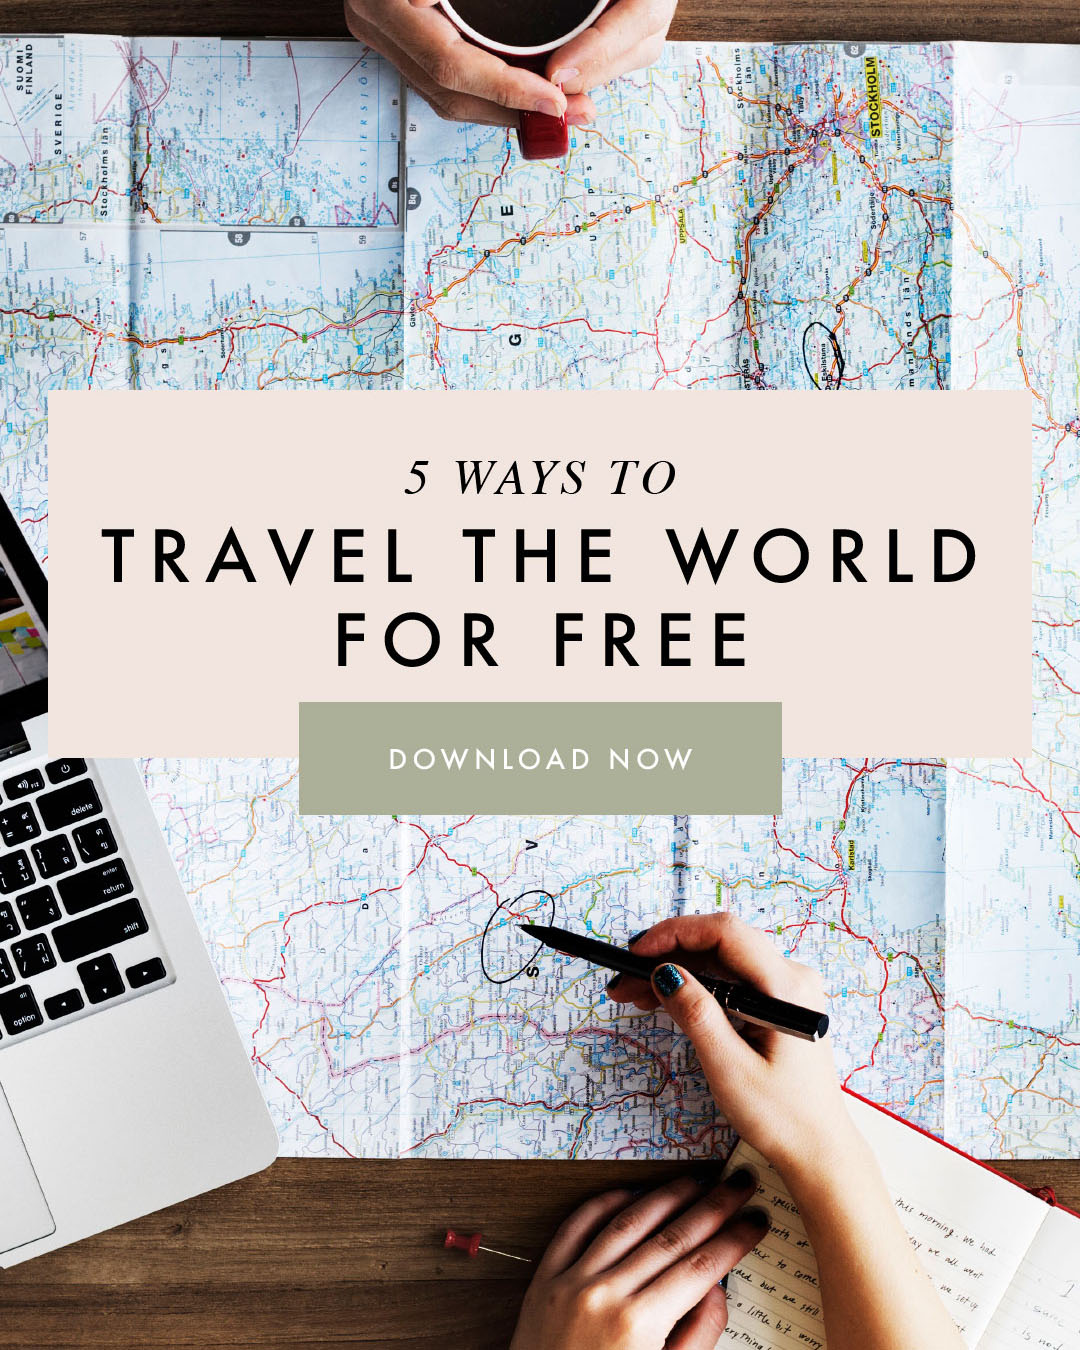 5 Ways to Travel the World for FREE - Digital Download Shay Spaniola